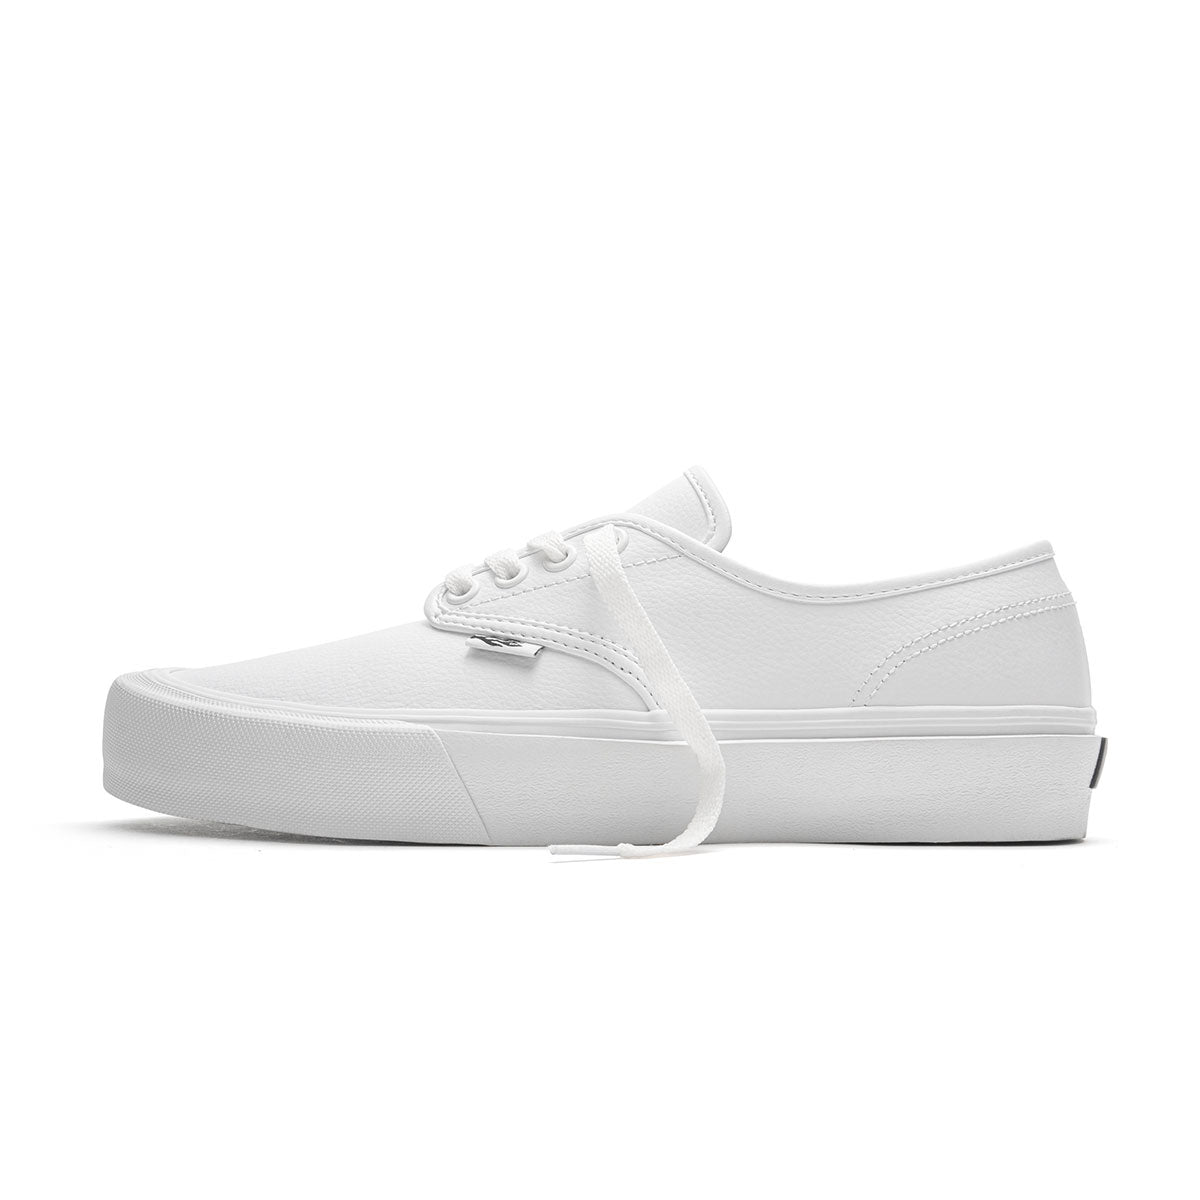 GOWER - WHITE WHITE LEATHER